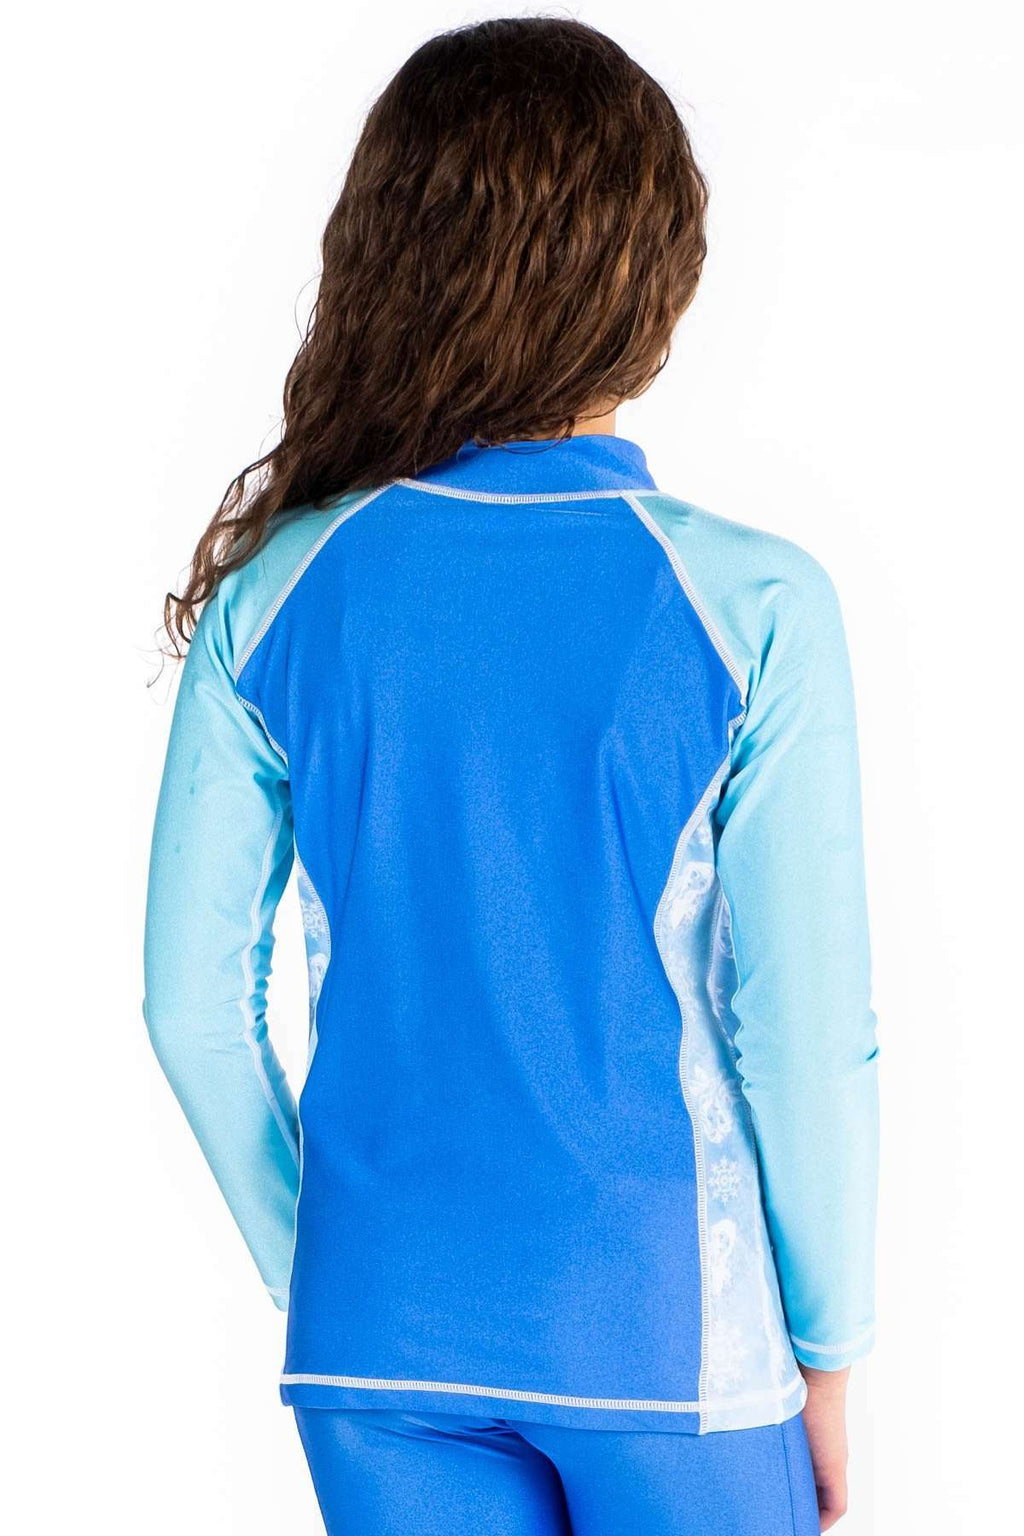 Coega Disney Girls Youth Rashguard - Long Sleeve Sun Protective Swimwear